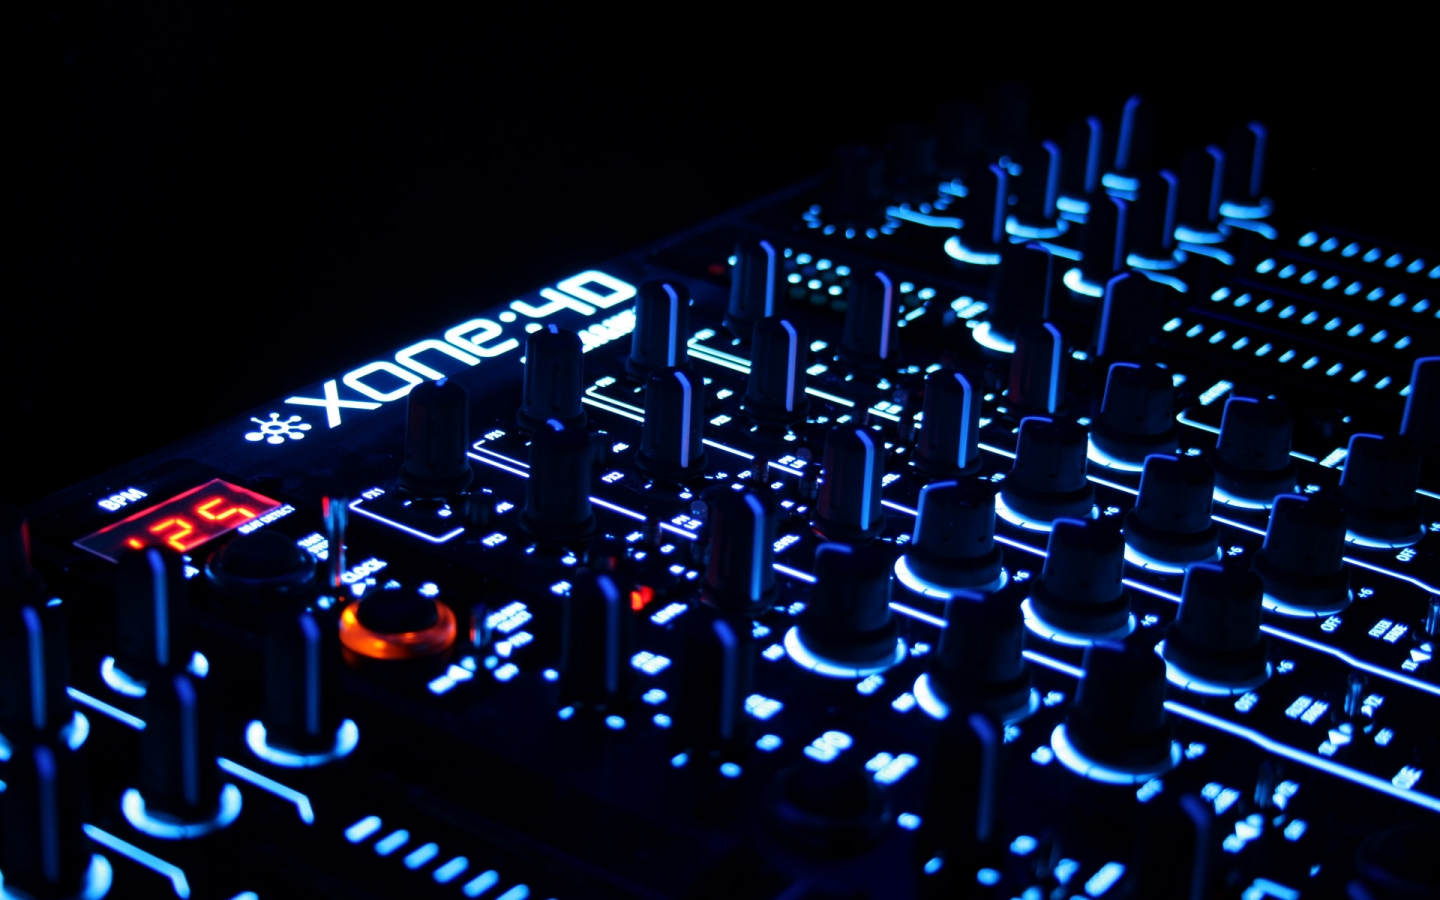 Papel de Parede Dj Wallpaper para Download no Celular ou Computador PC 1440x900